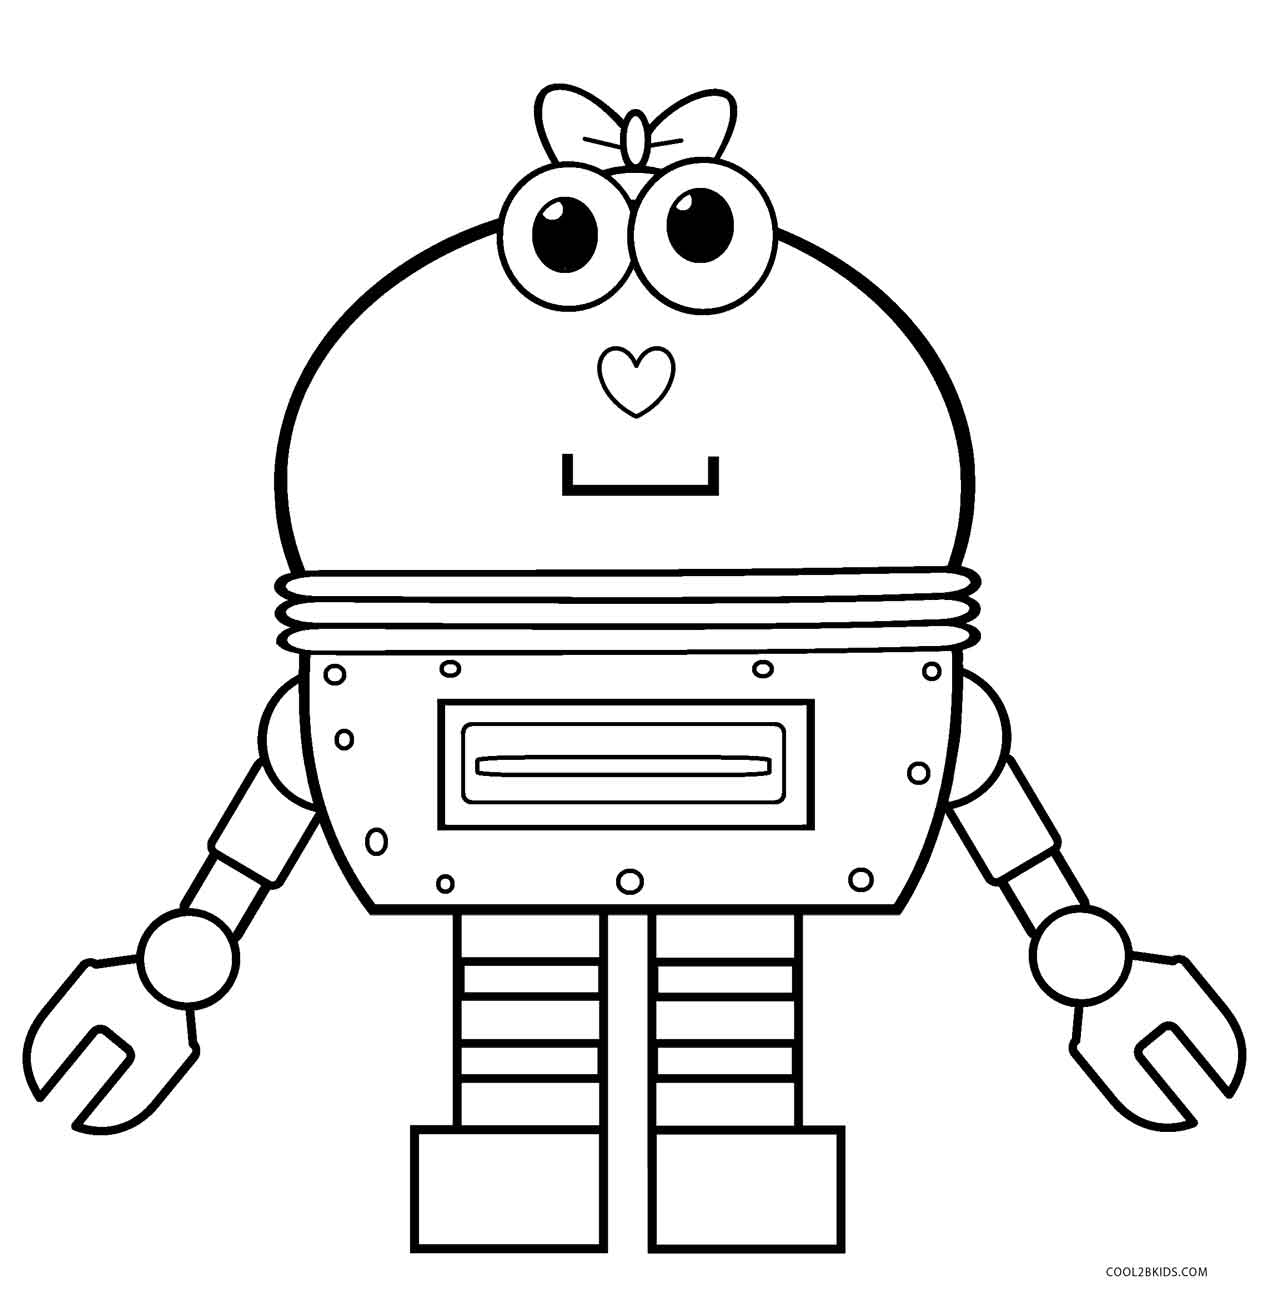 coloring robot free printable robot coloring pages for kids cool2bkids coloring robot 1 1